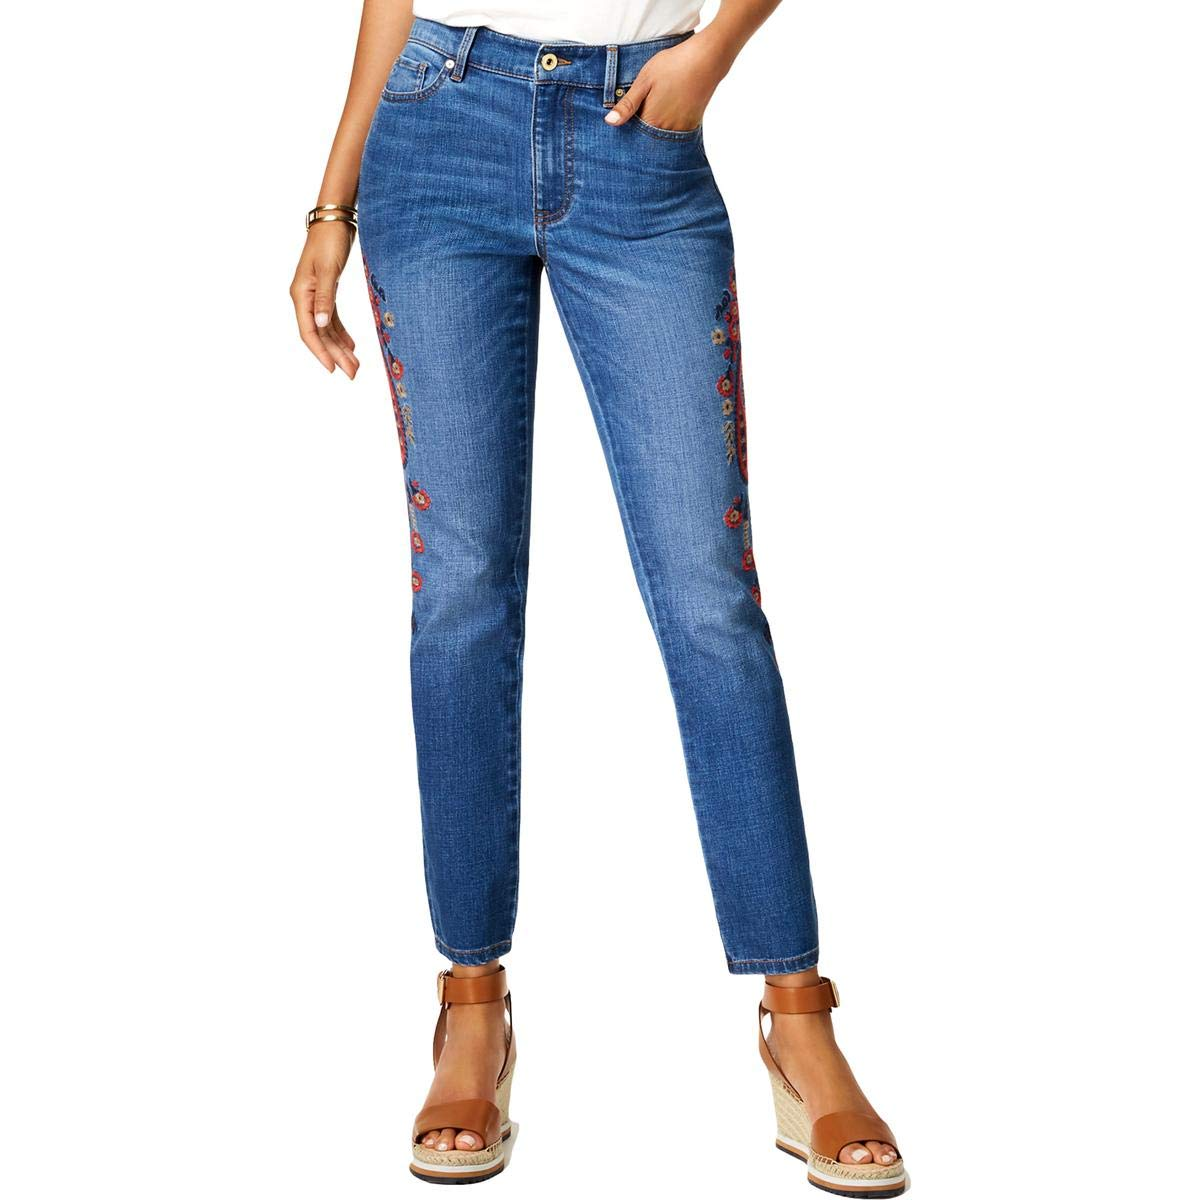 Tommy Hilfiger high waisted straight leg jeans